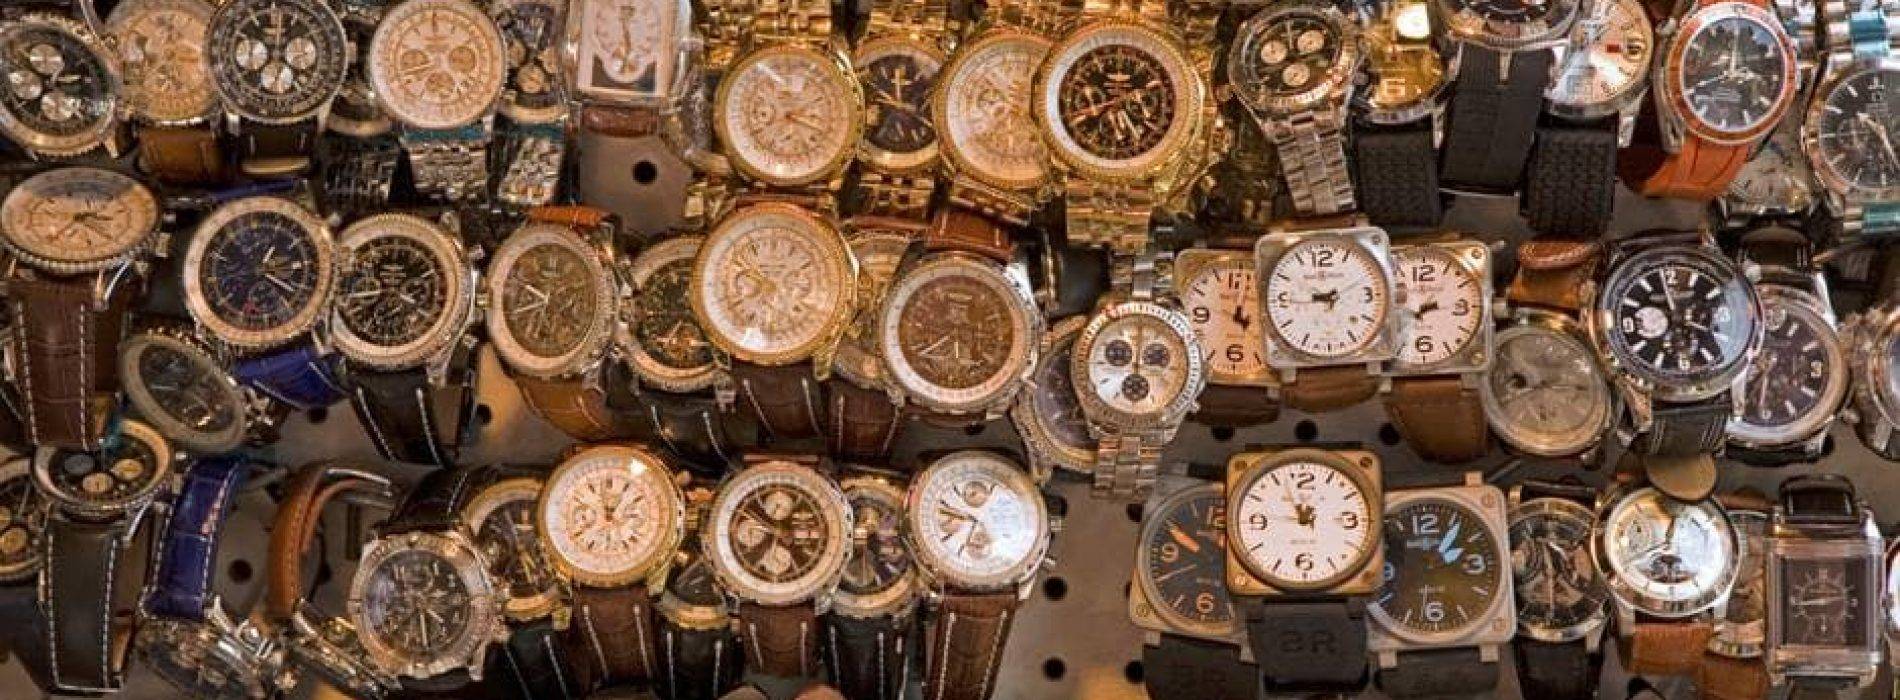 .Cons and of counterfeit watches